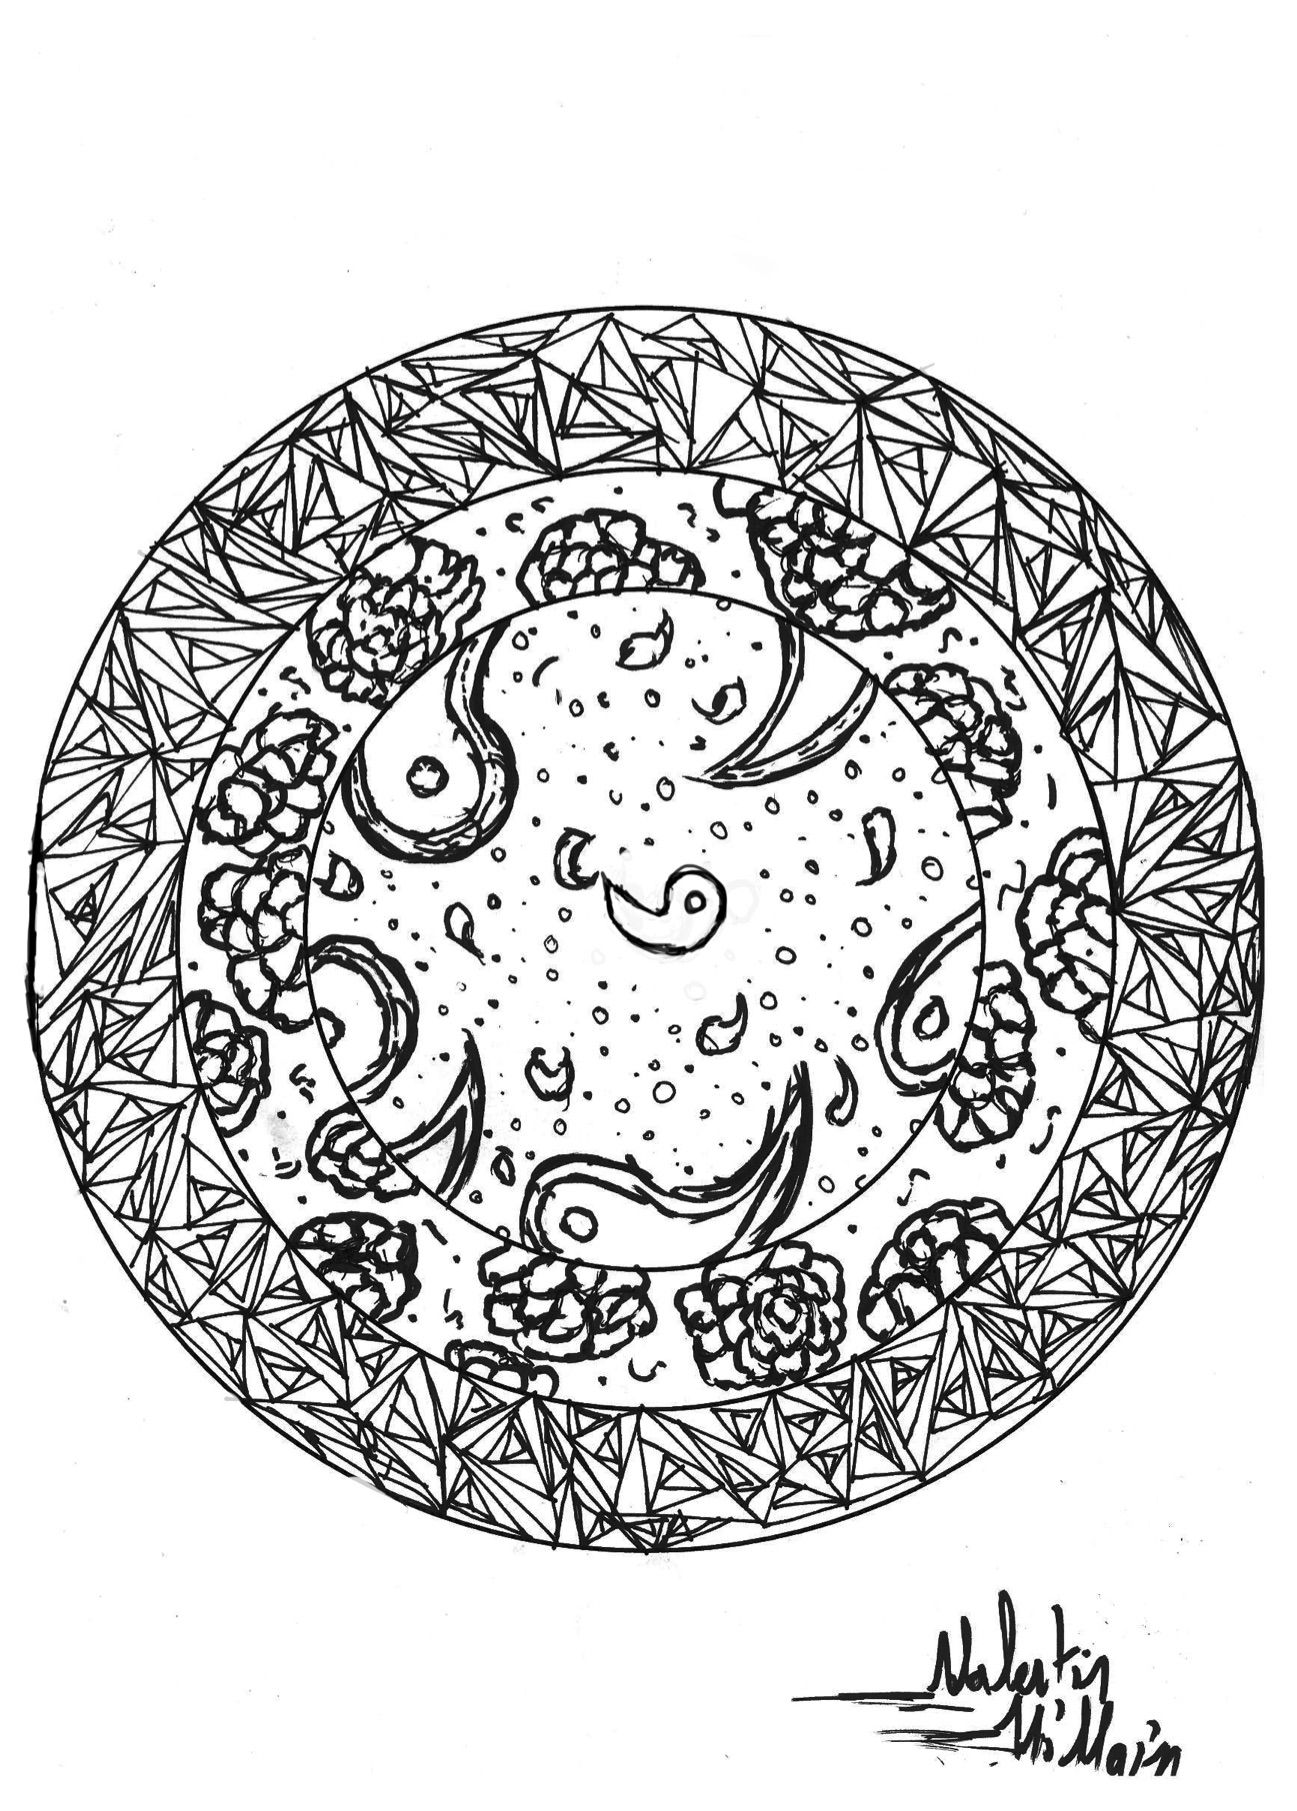 a mandala maked by valentin for your coloring page time from the gallery mandalas artist valentin